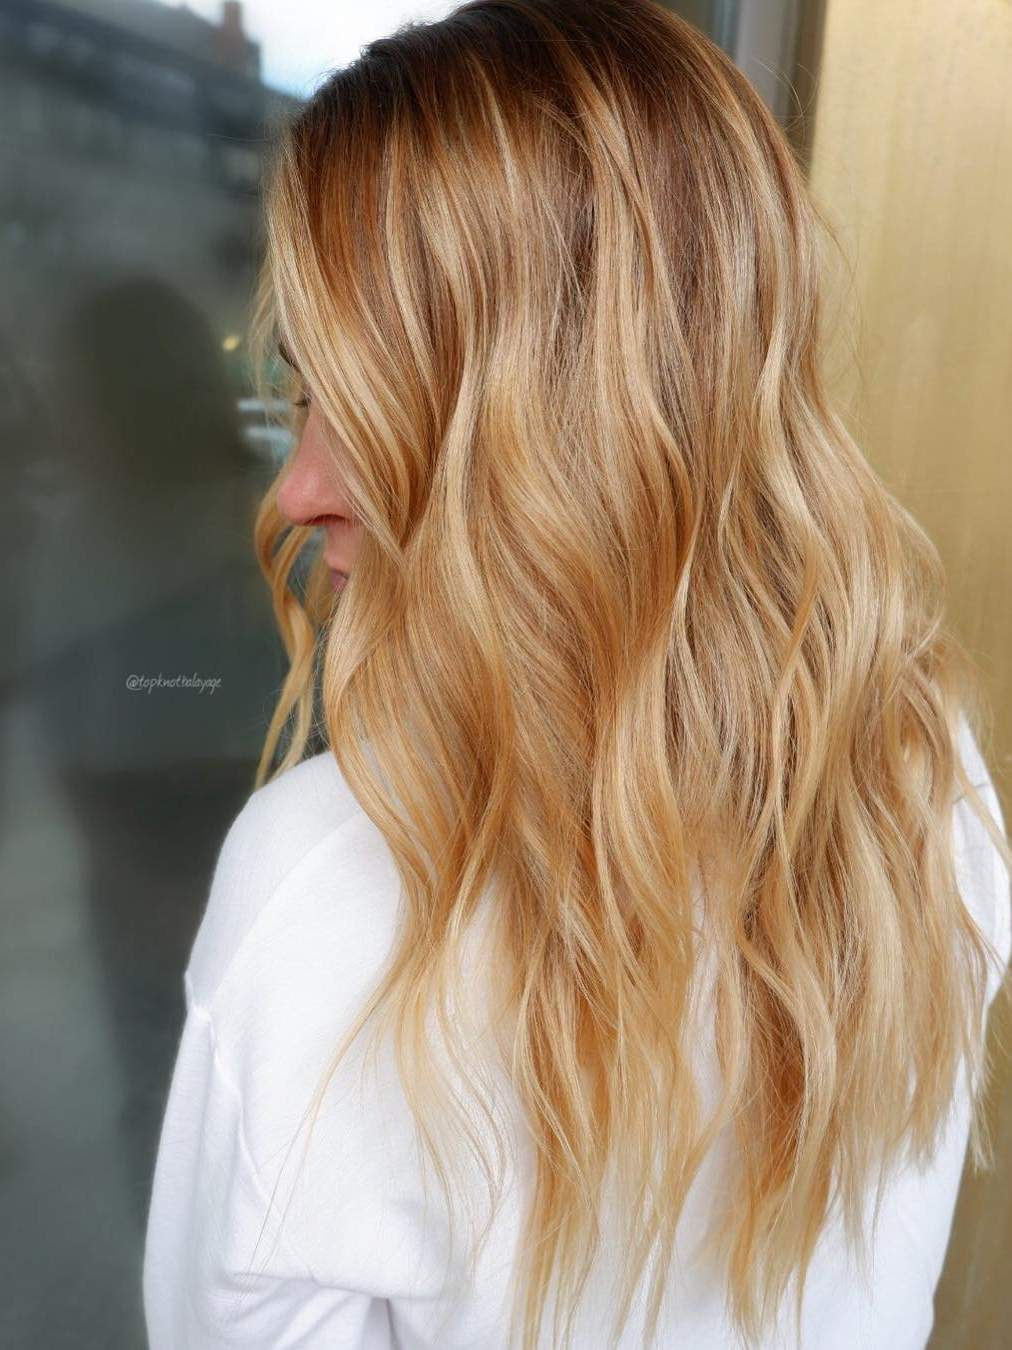 7 Hair Color Trends That Will Be Huge in 2019 - Health 7fc166a60066